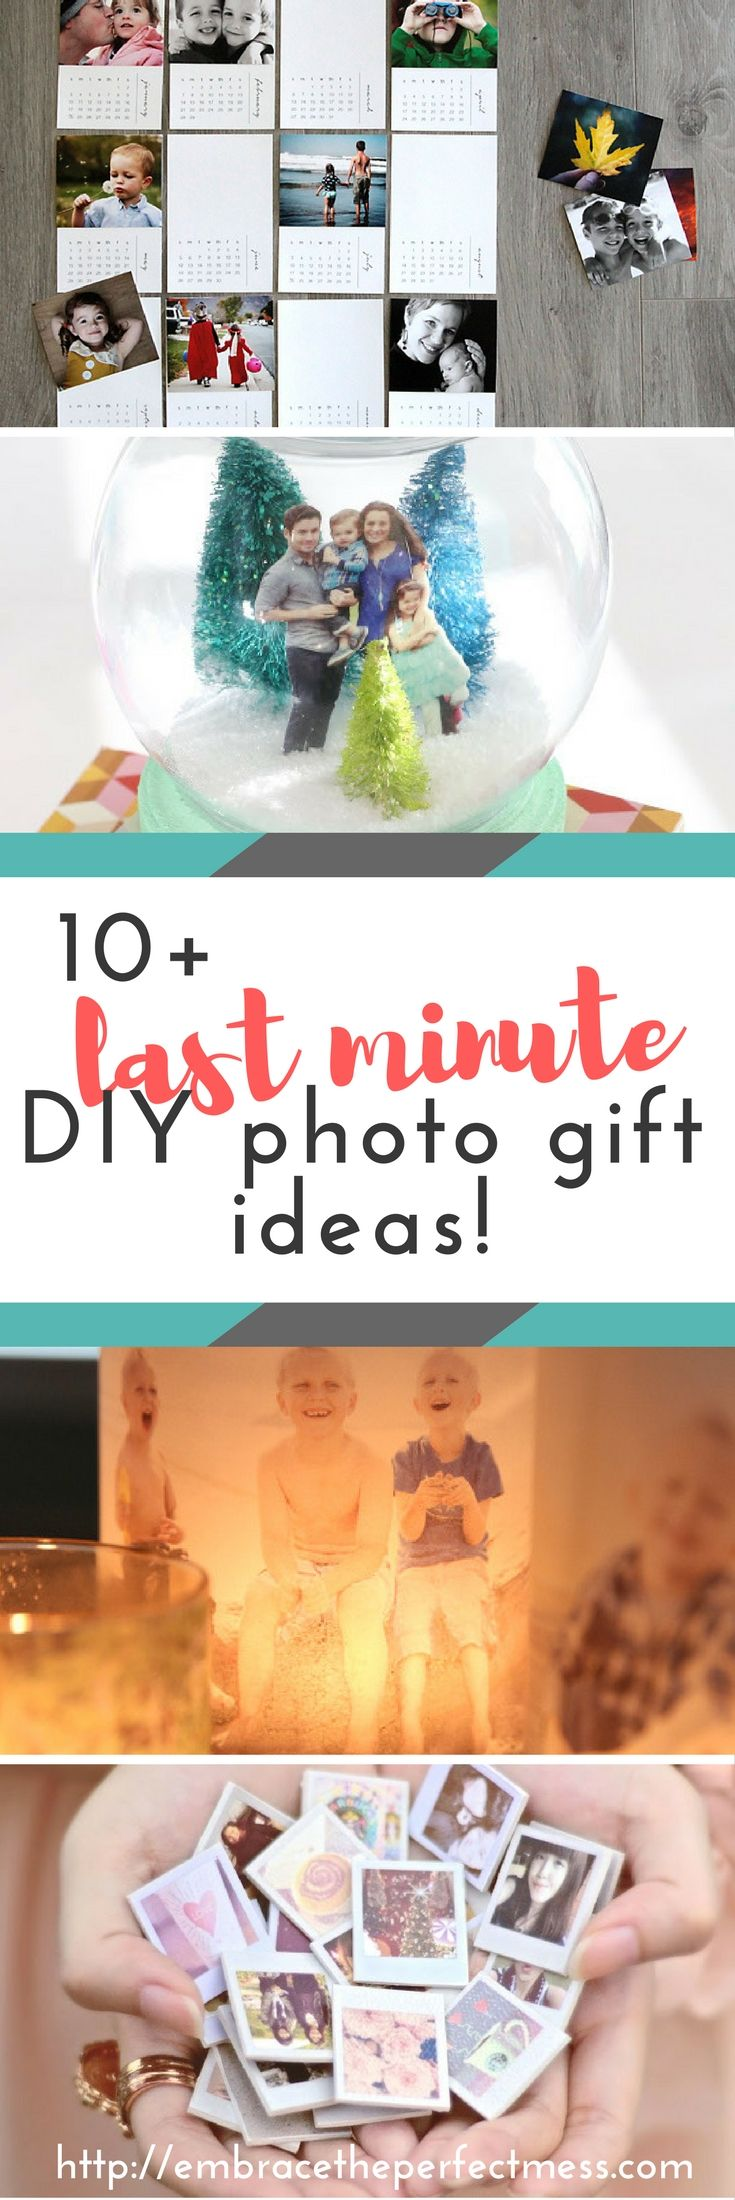 Looking for great last minute DIY photo gifts? This is a perfect list of ideas! #photogifts #lastminutegifts #diyphotogifts